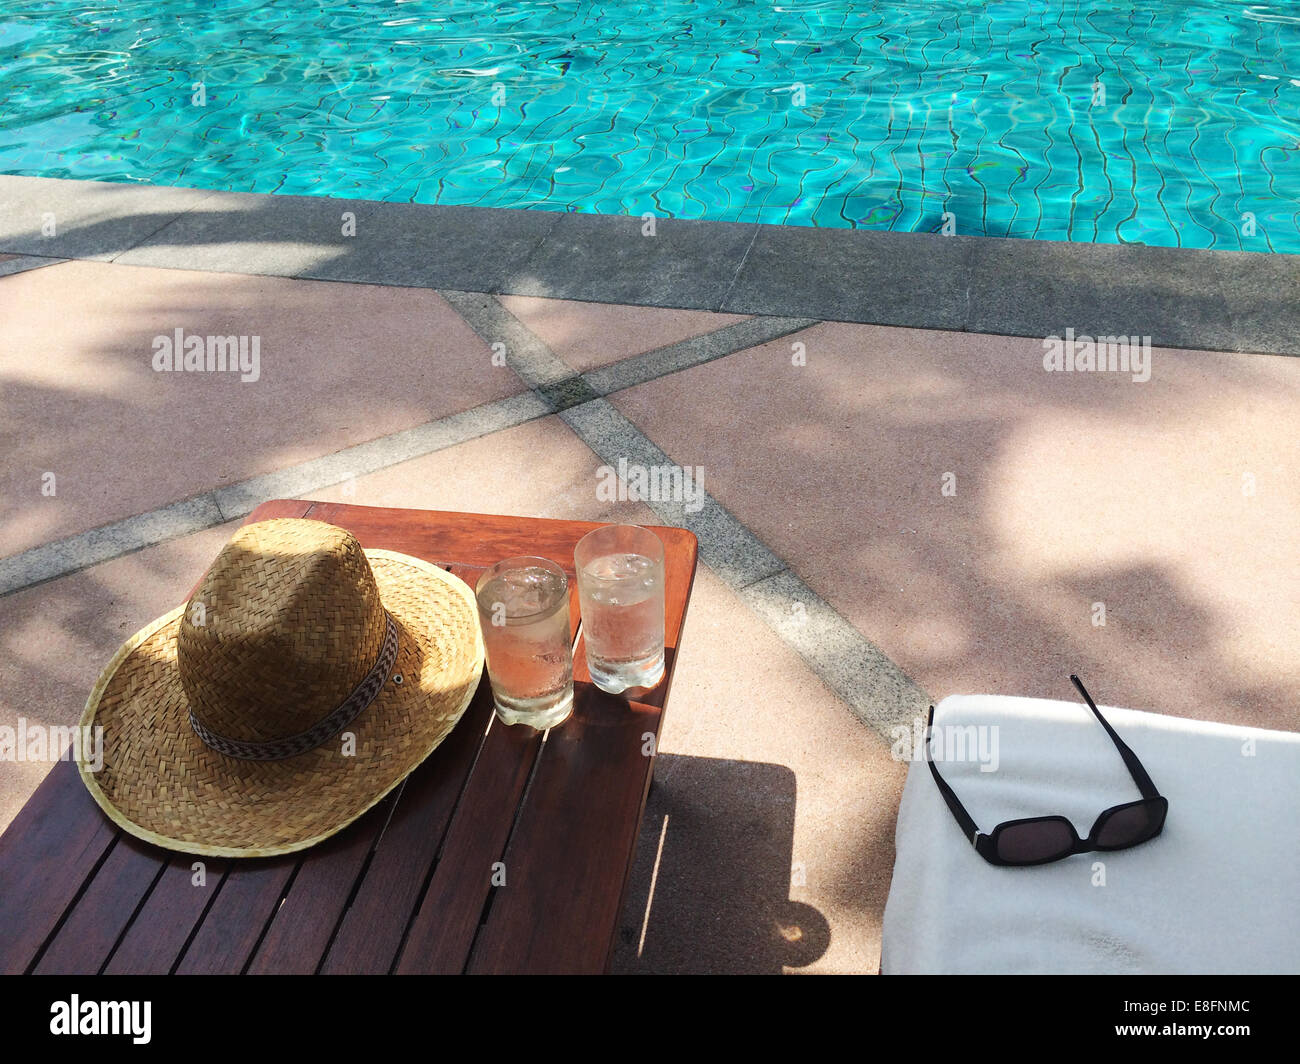 Straw sun hat, sunglasses and two glasses of water by swimming pool Stock Photo